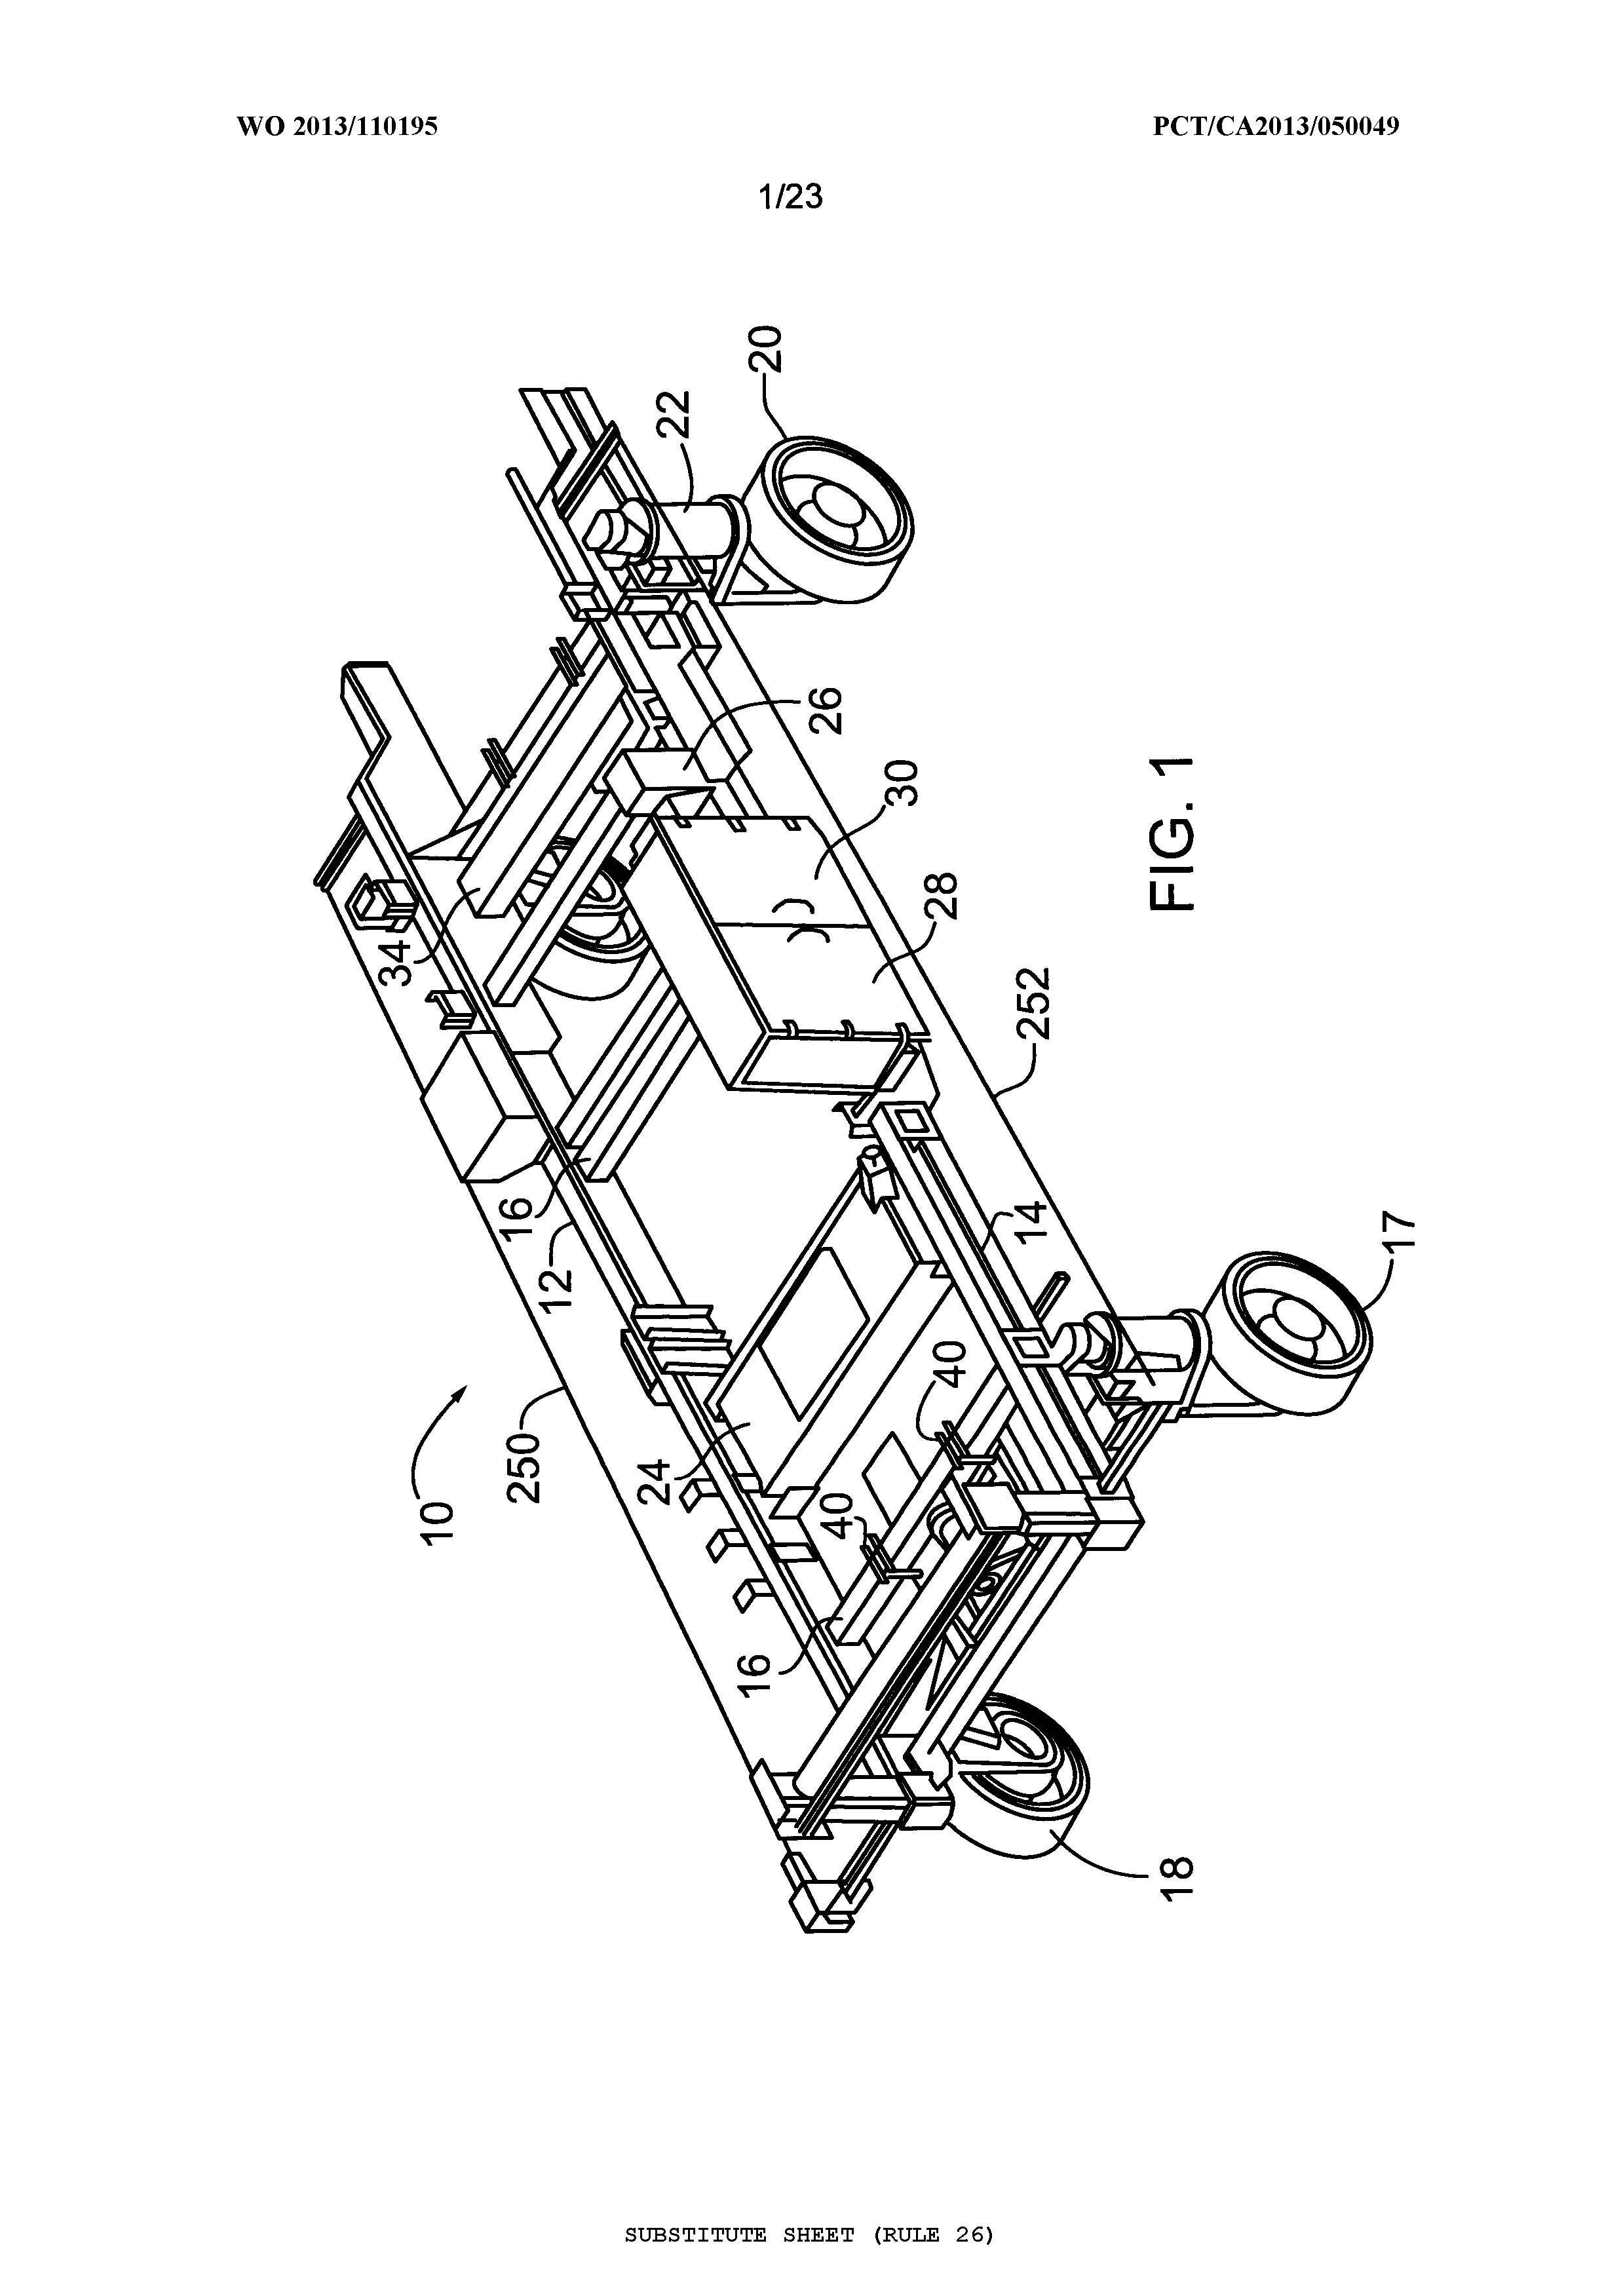 Hitch system for steering vehicle for train by Prairie